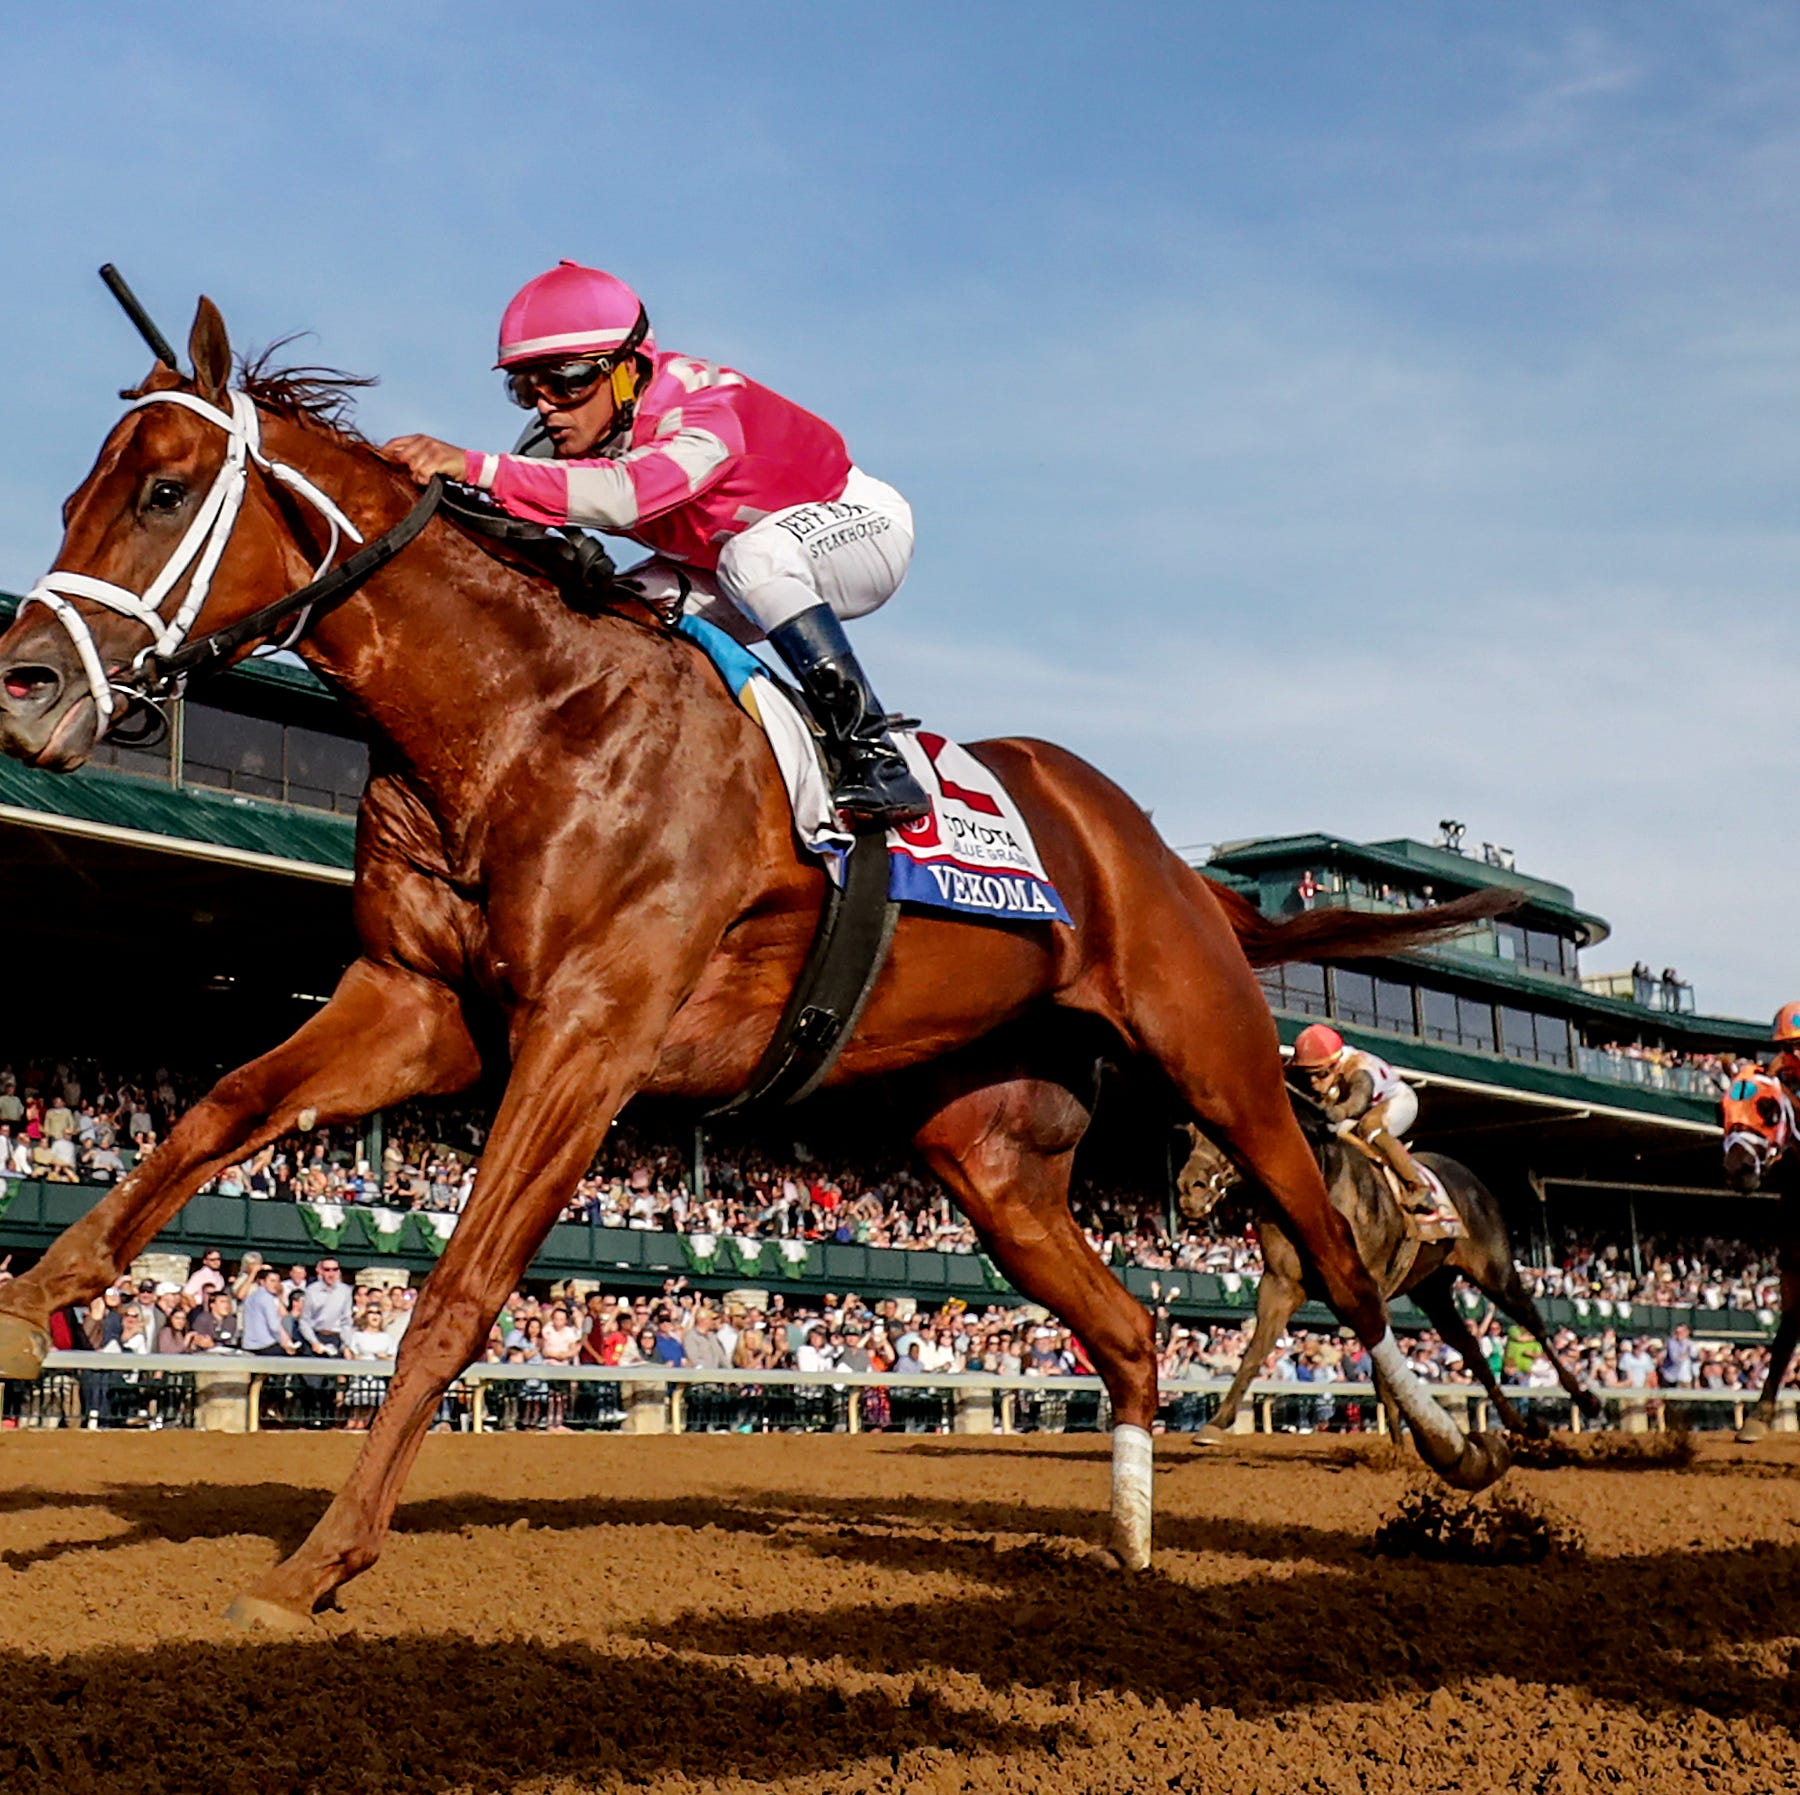 Vekoma wins Blue Grass, sending Louisville's George Weaver back to Kentucky Derby